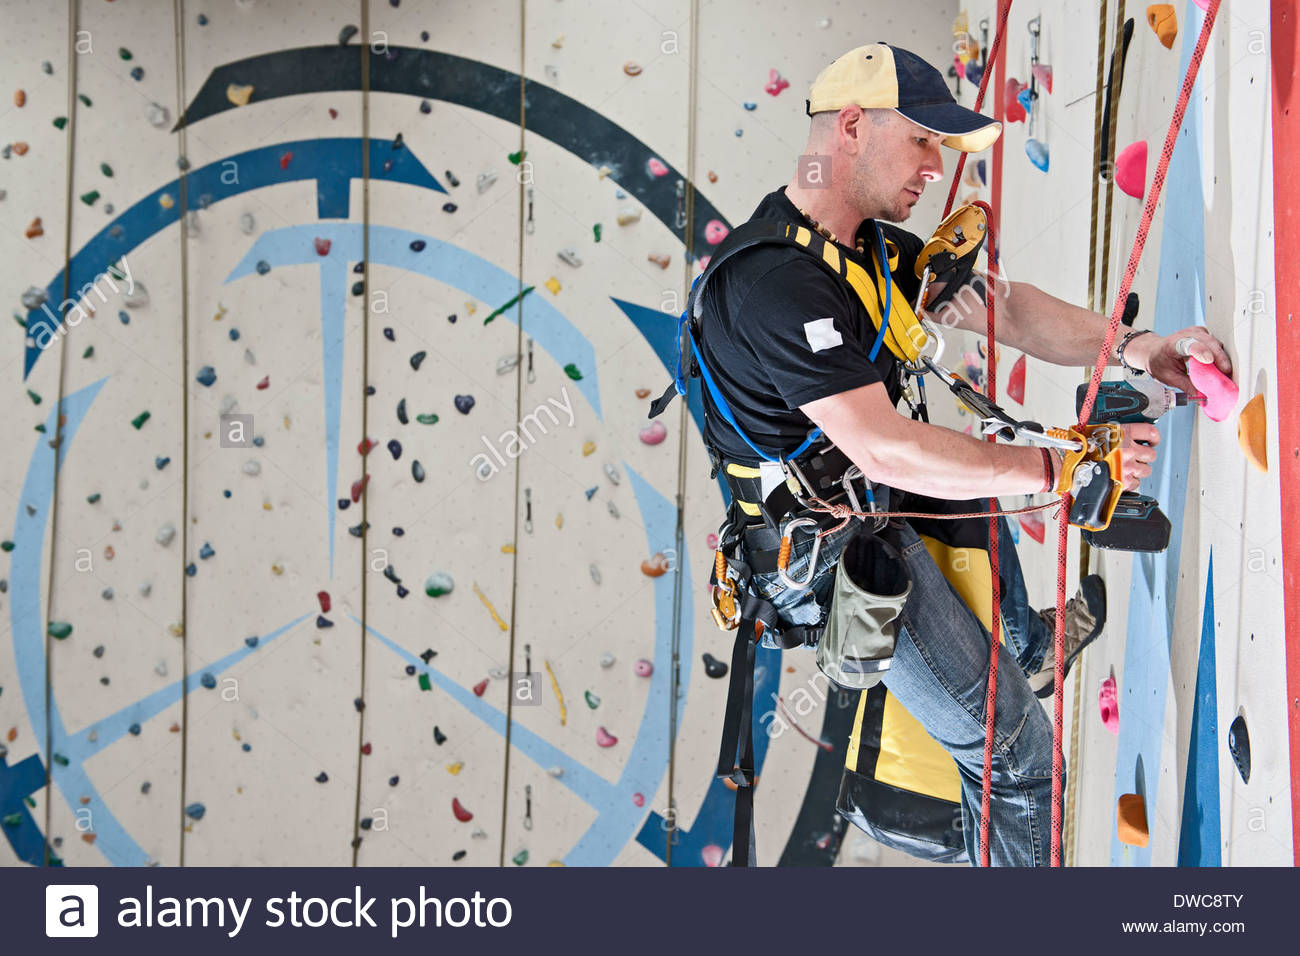 Route setter preparing new route on indoor climbing wall - Stock Image